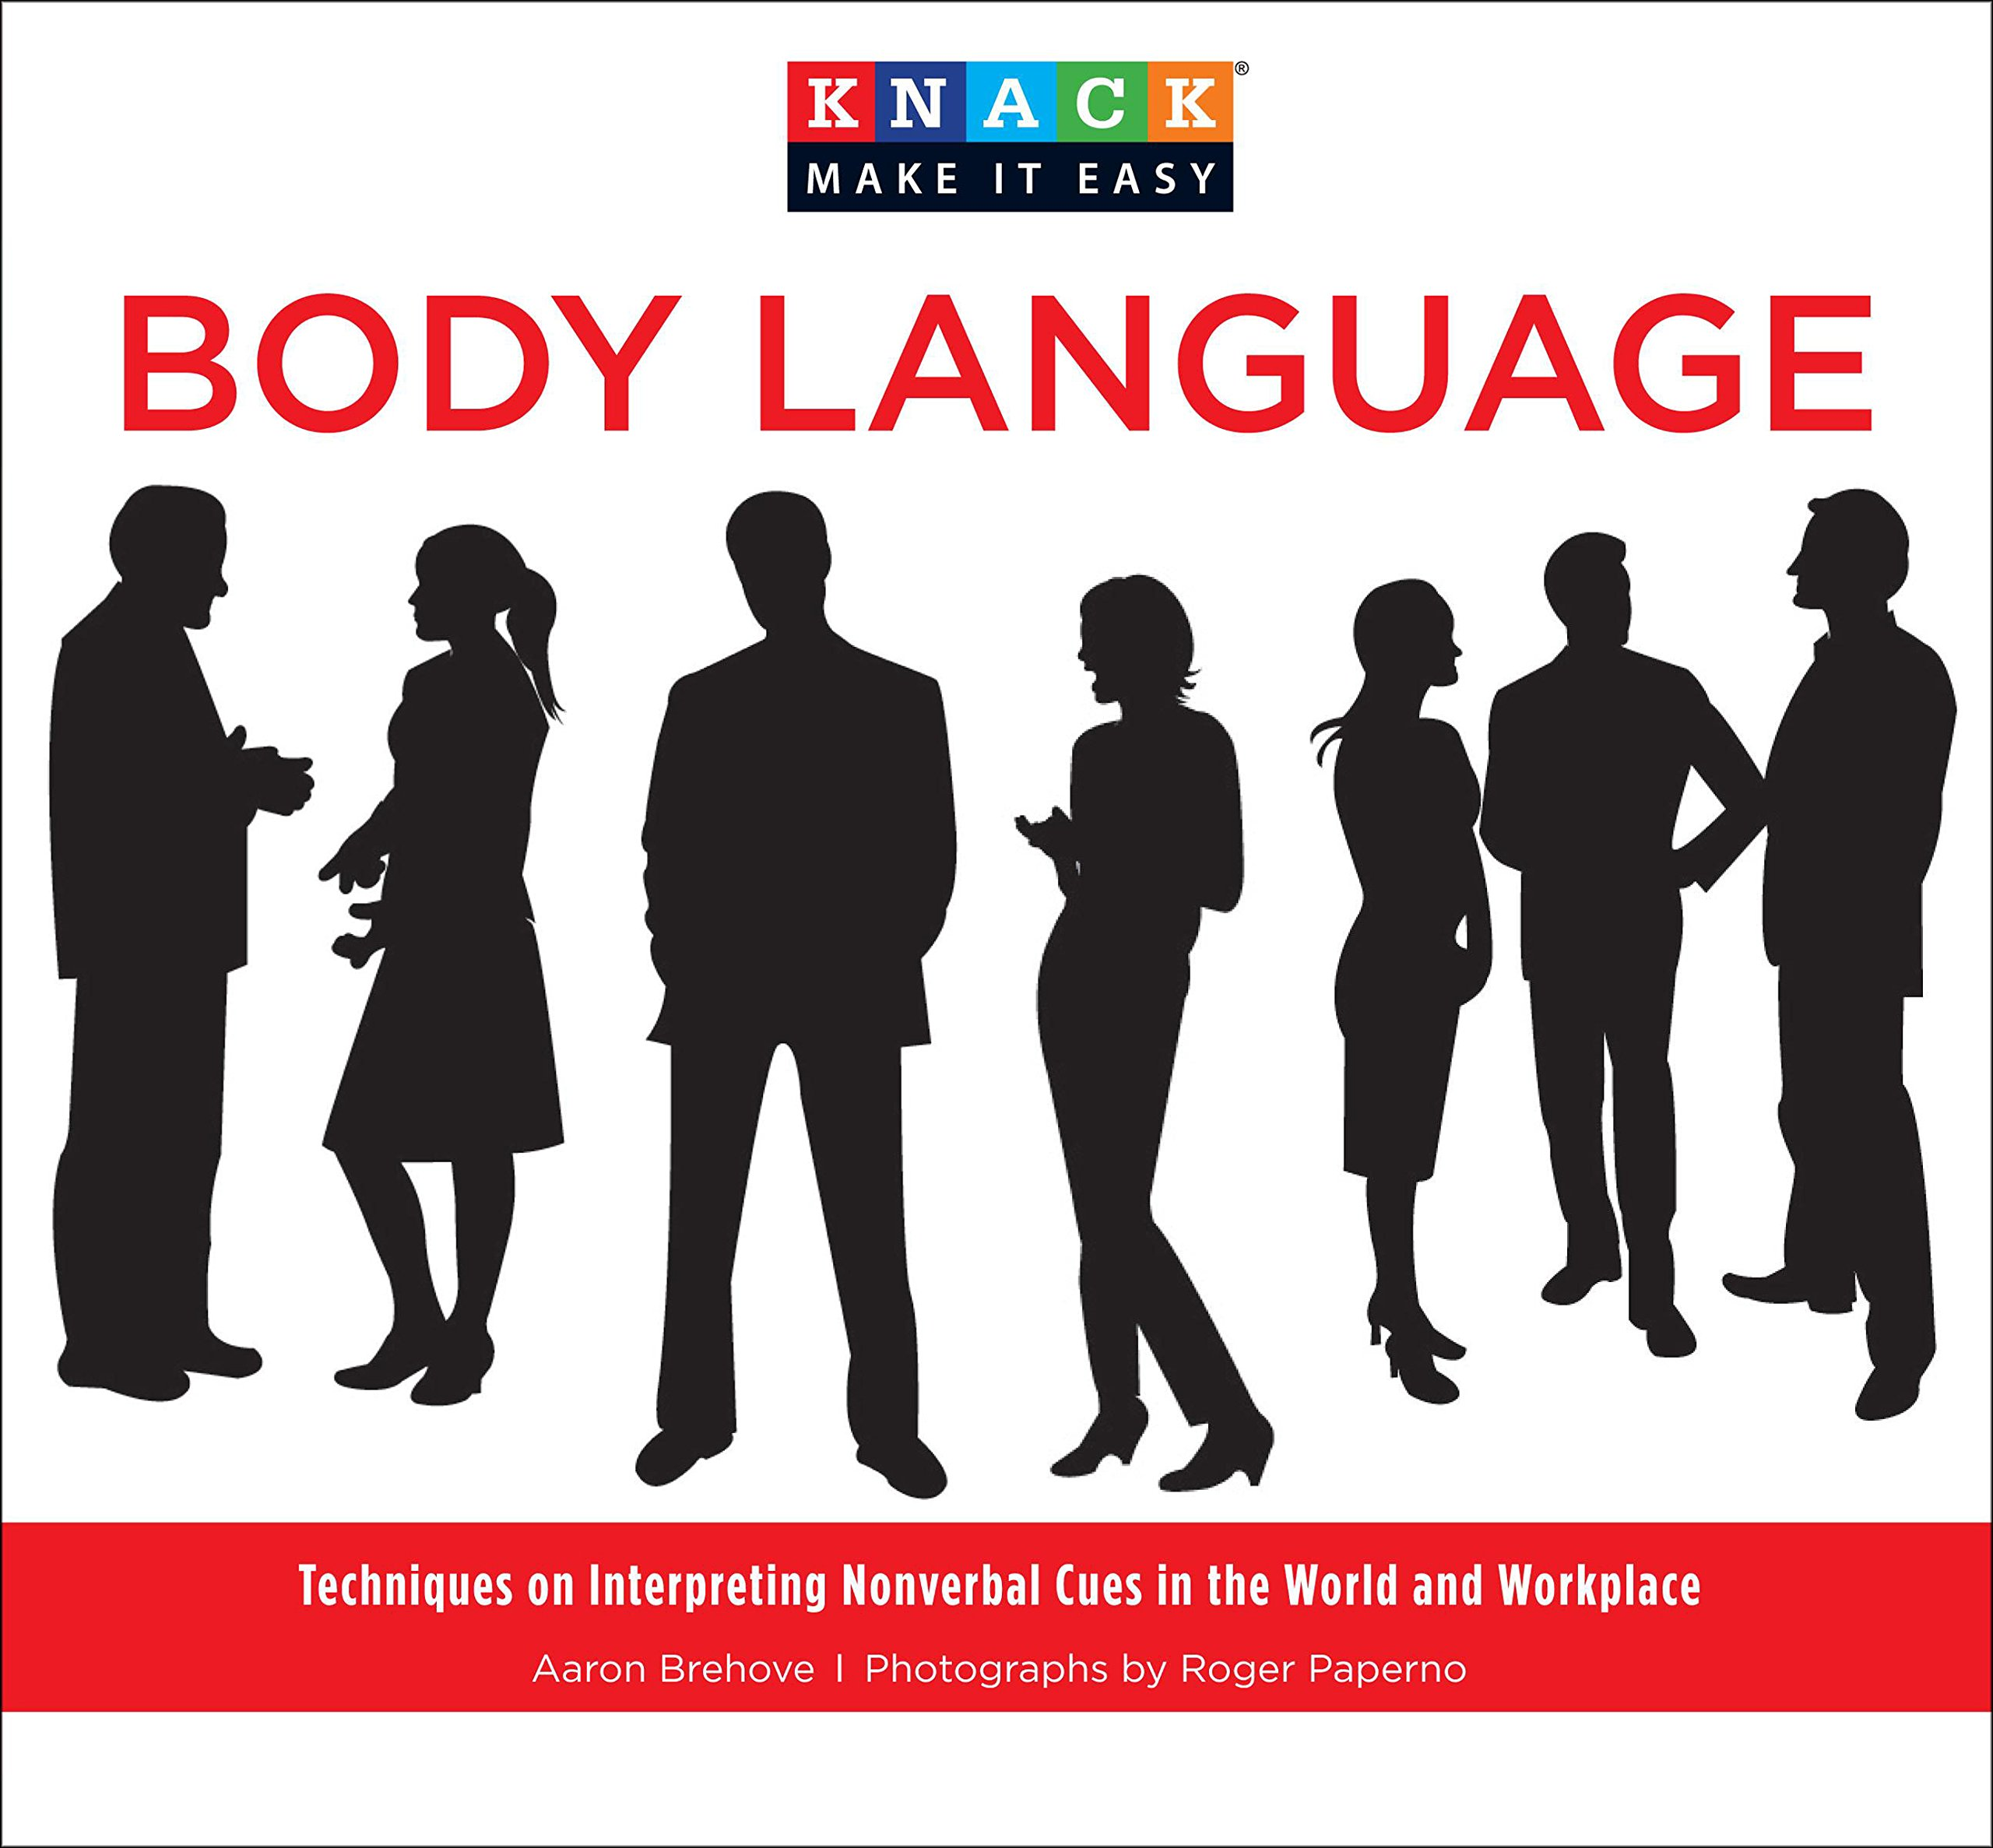 Knack Body Language: Techniques On Interpreting Nonverbal Cues In The World And Workplace (Knack: Make It Easy) by Globe Pequot Press